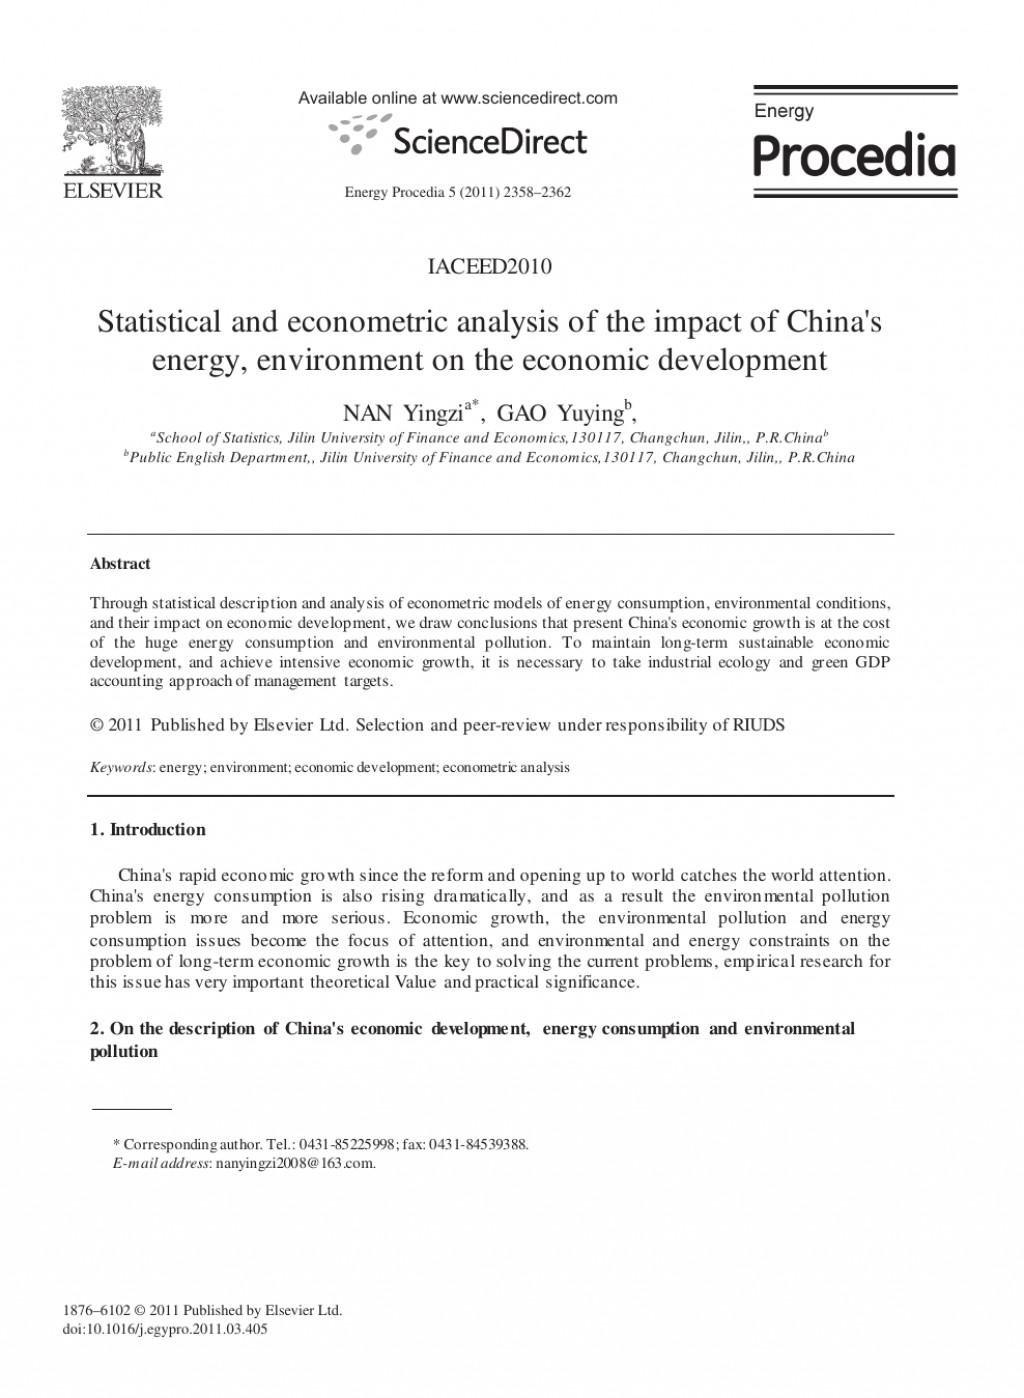 003 Economic Development Research Papers Paper Unusual Growth Local Large